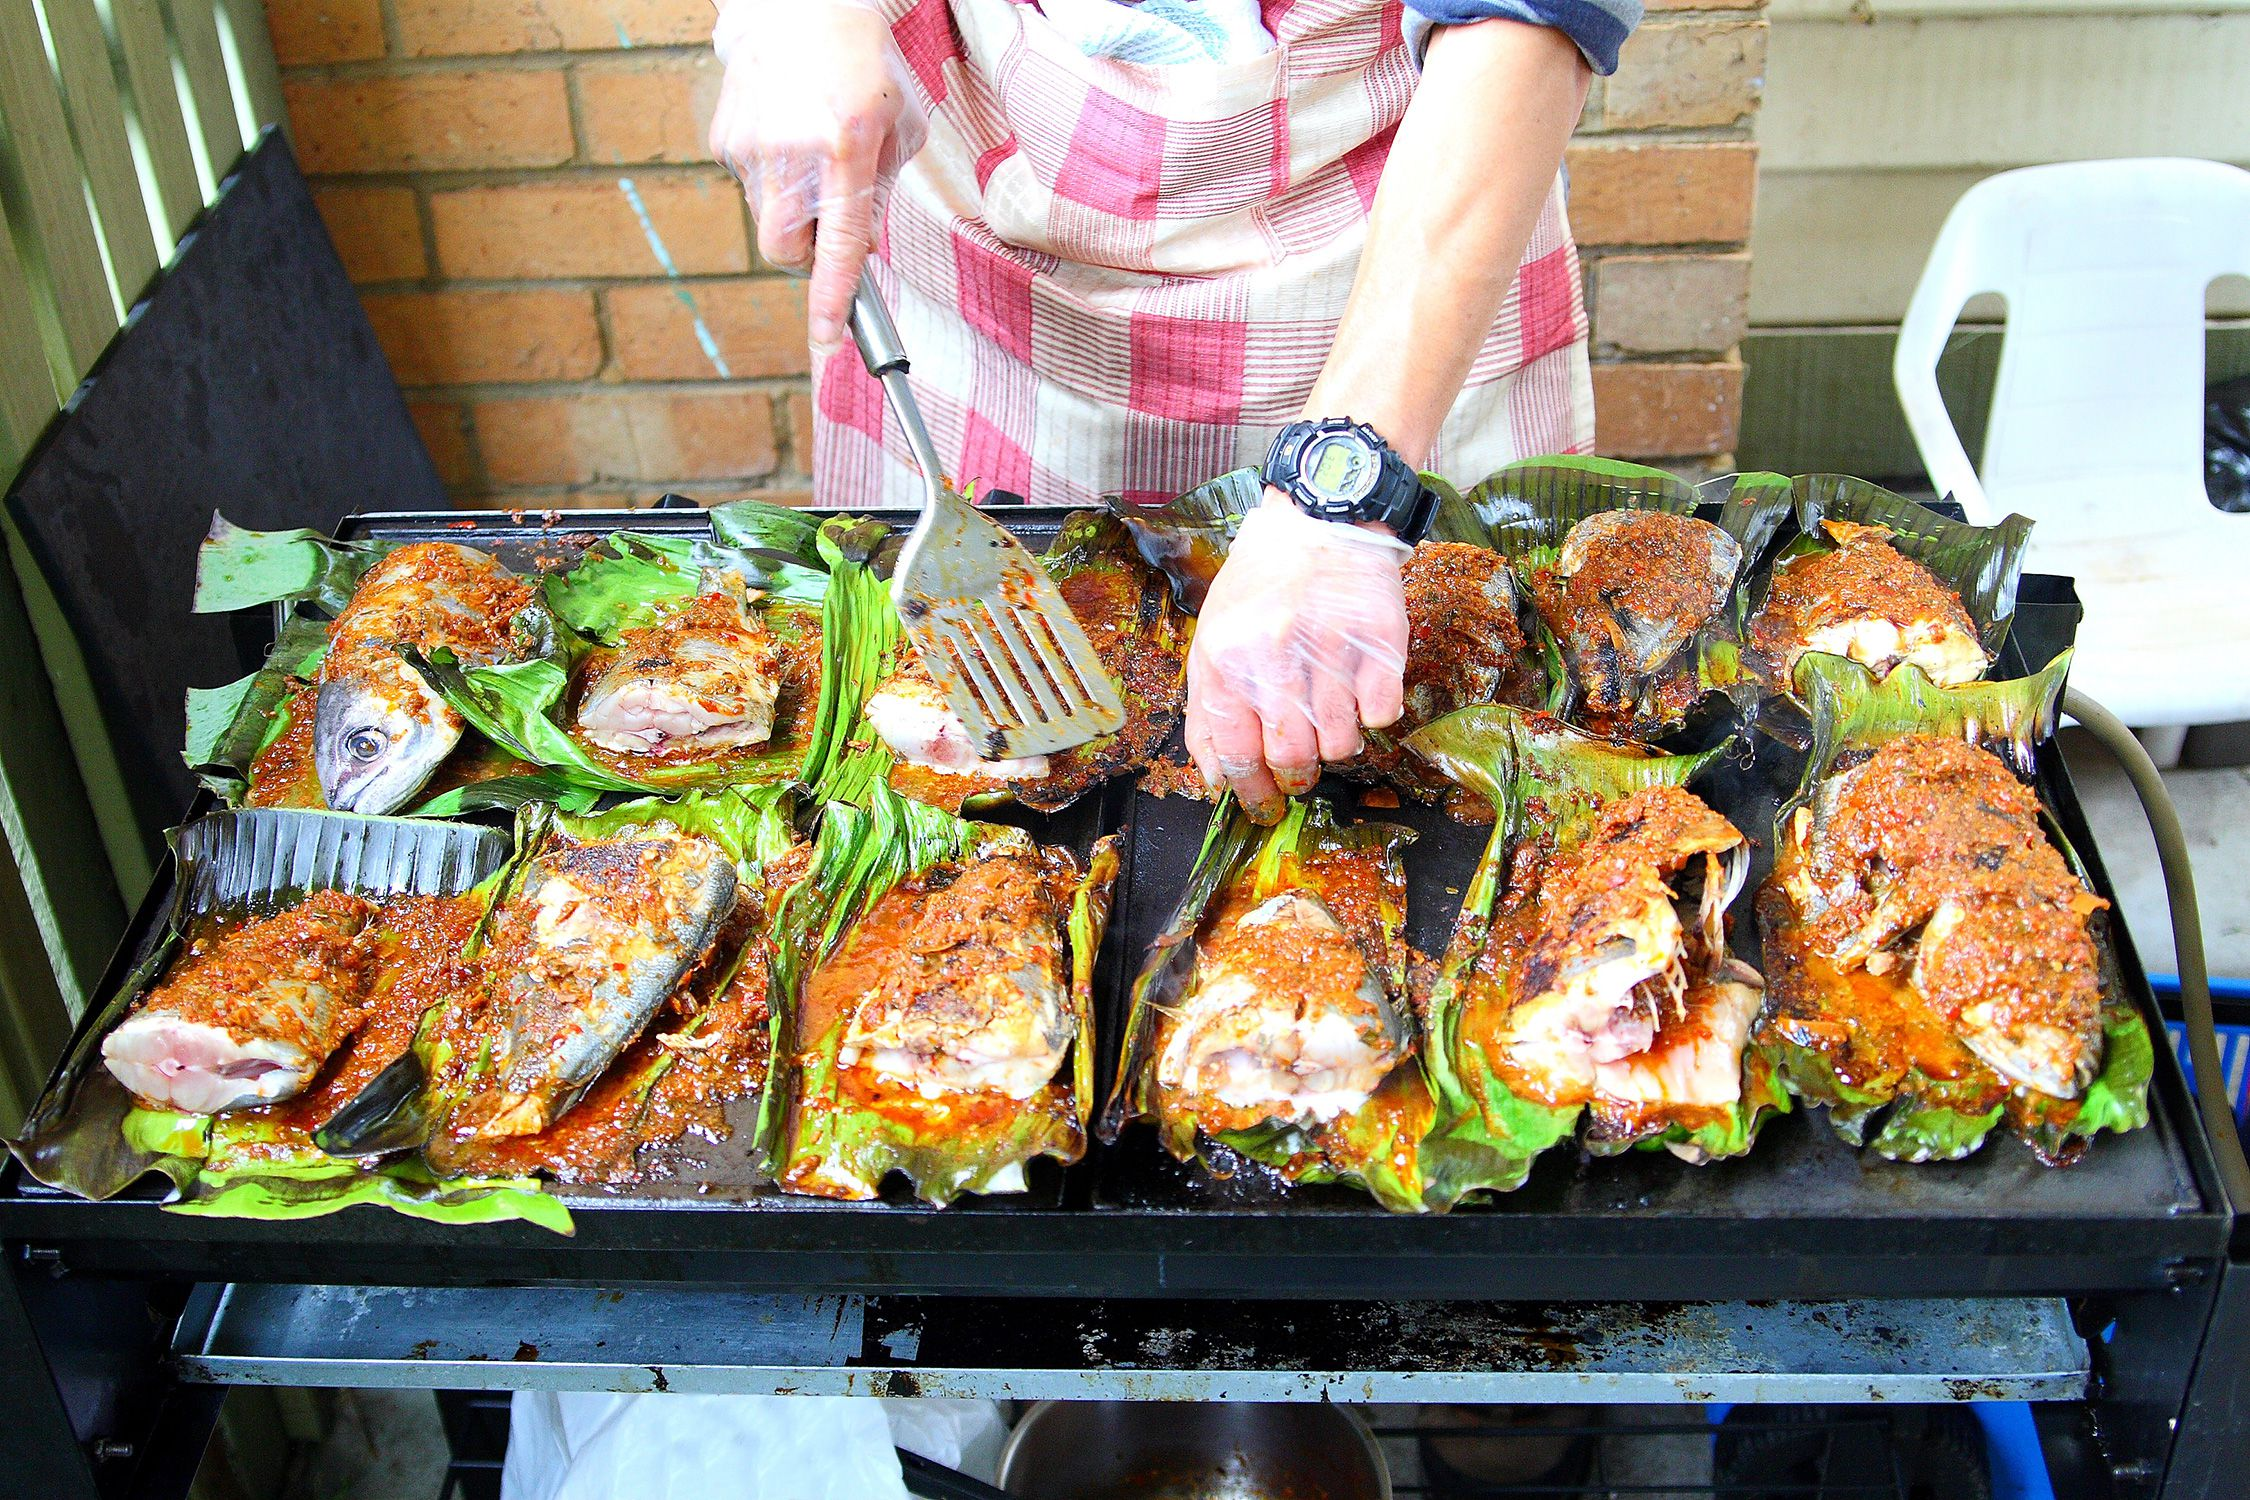 Ikan bakar malaysian char grilled fish recipe for How to cook fish on the grill